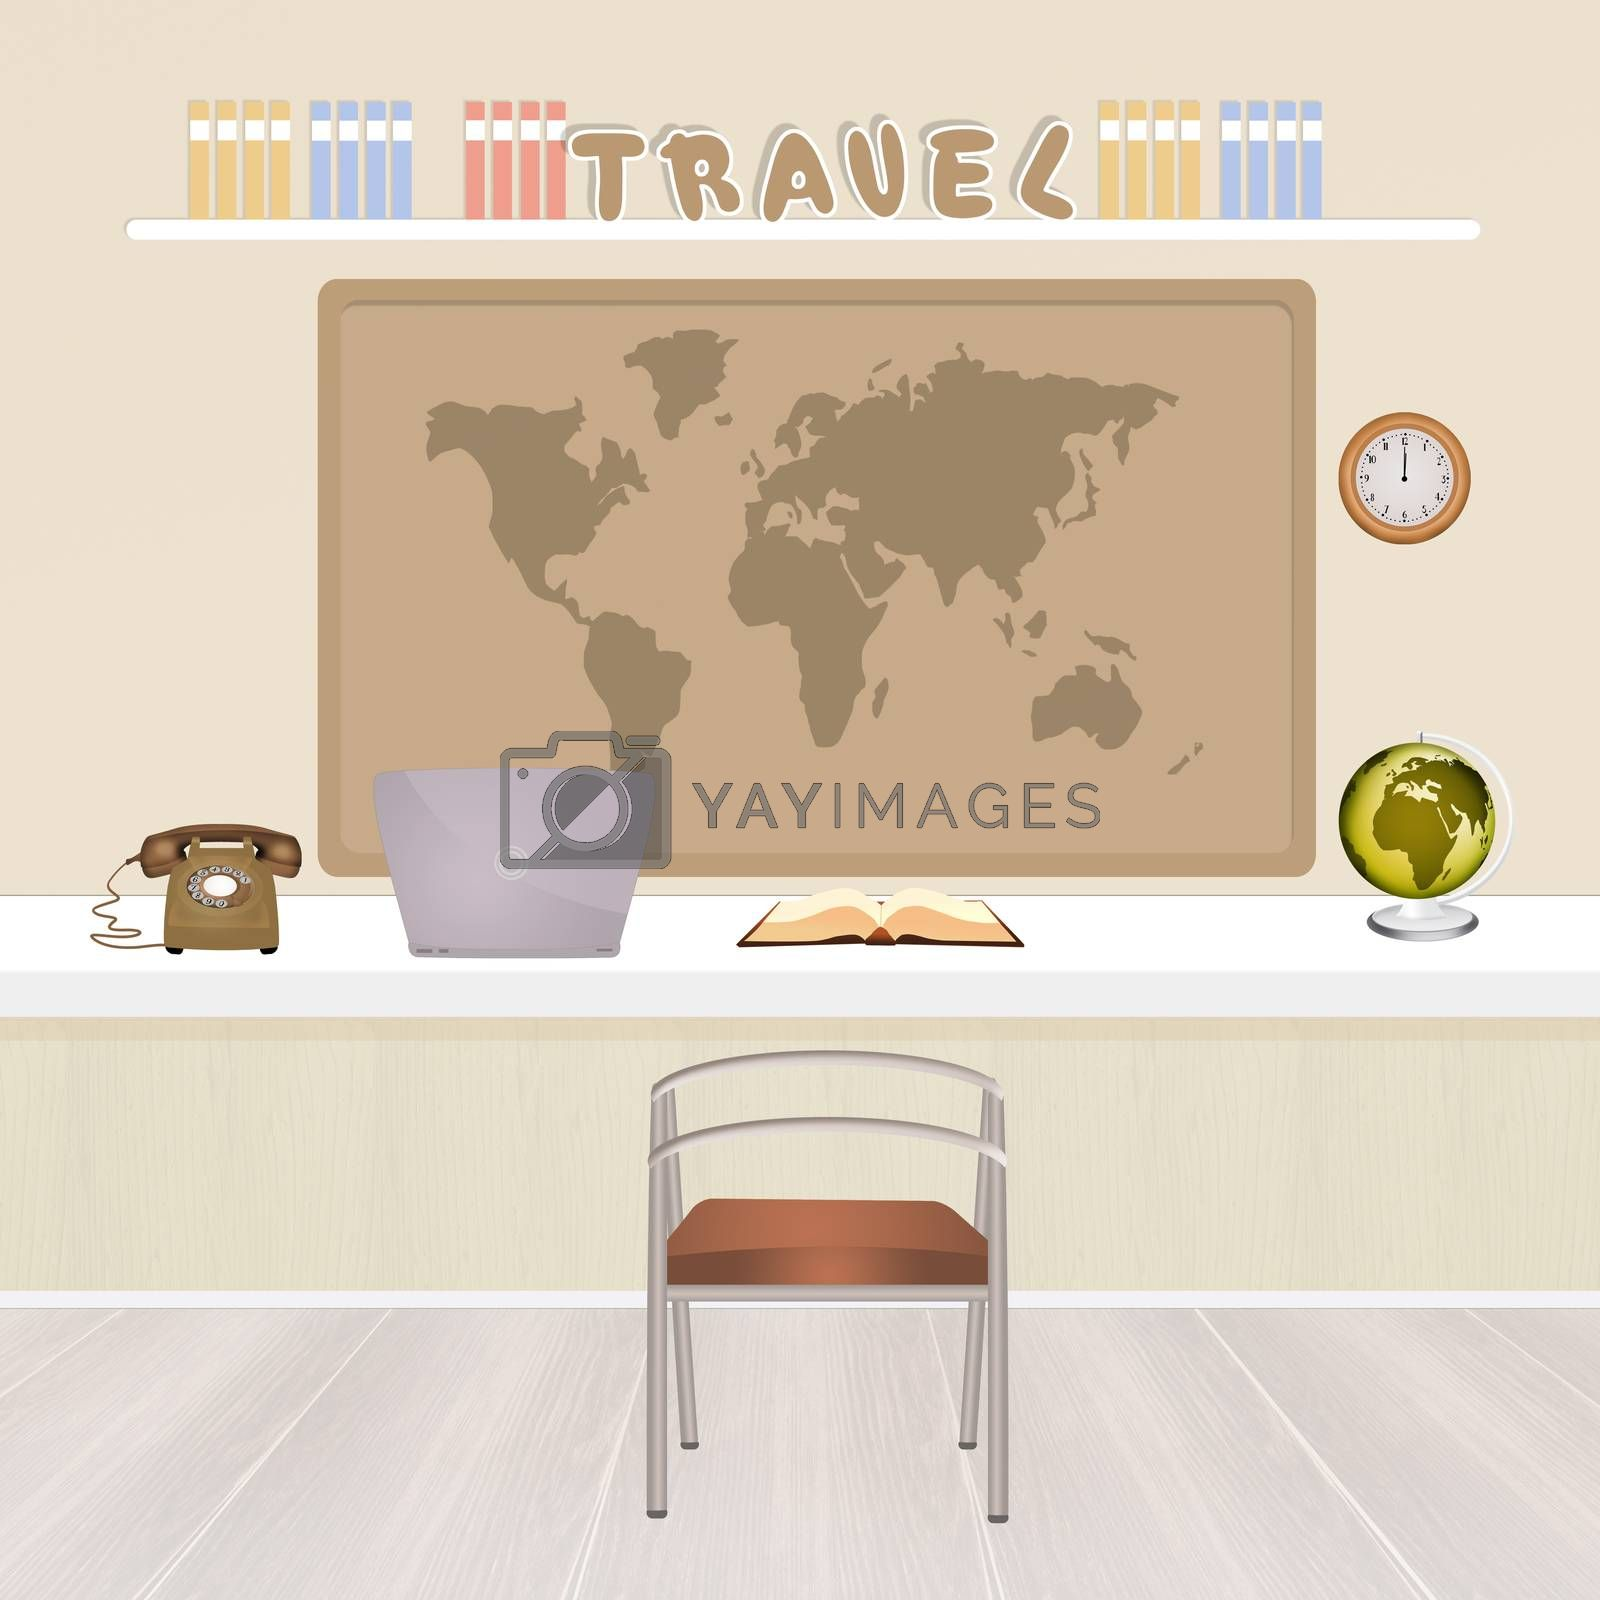 travel agency by adrenalina